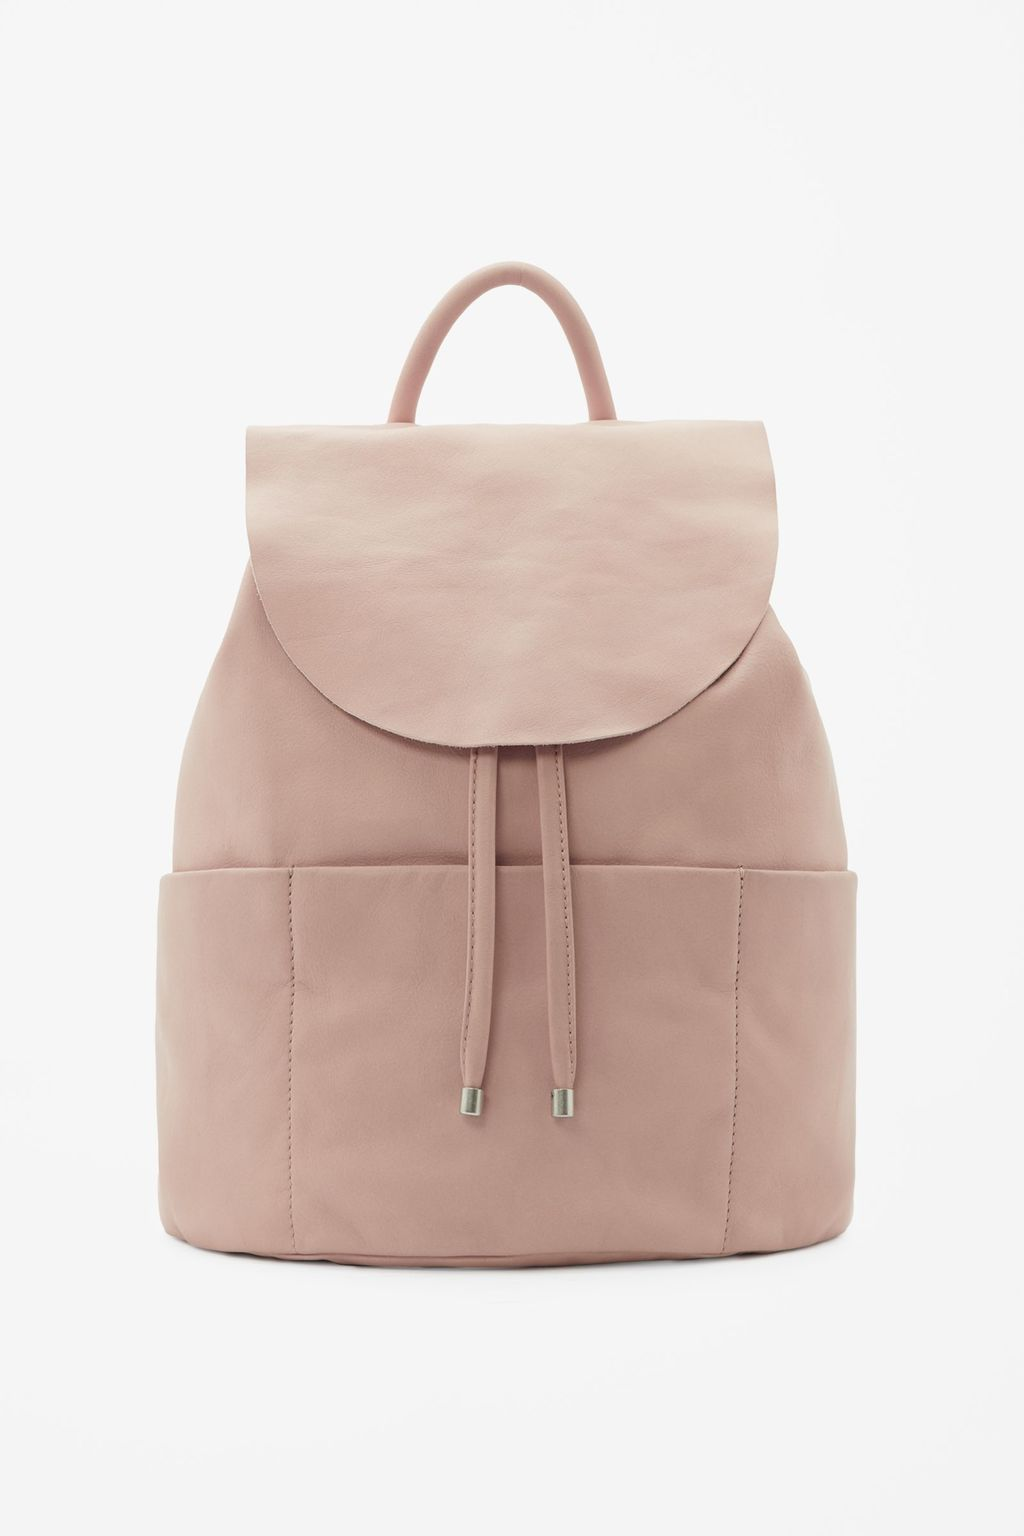 Unstructured Leather Backpack - predominant colour: blush; occasions: casual, creative work; type of pattern: standard; style: rucksack; length: rucksack; size: standard; material: leather; pattern: plain; finish: plain; season: s/s 2016; wardrobe: basic